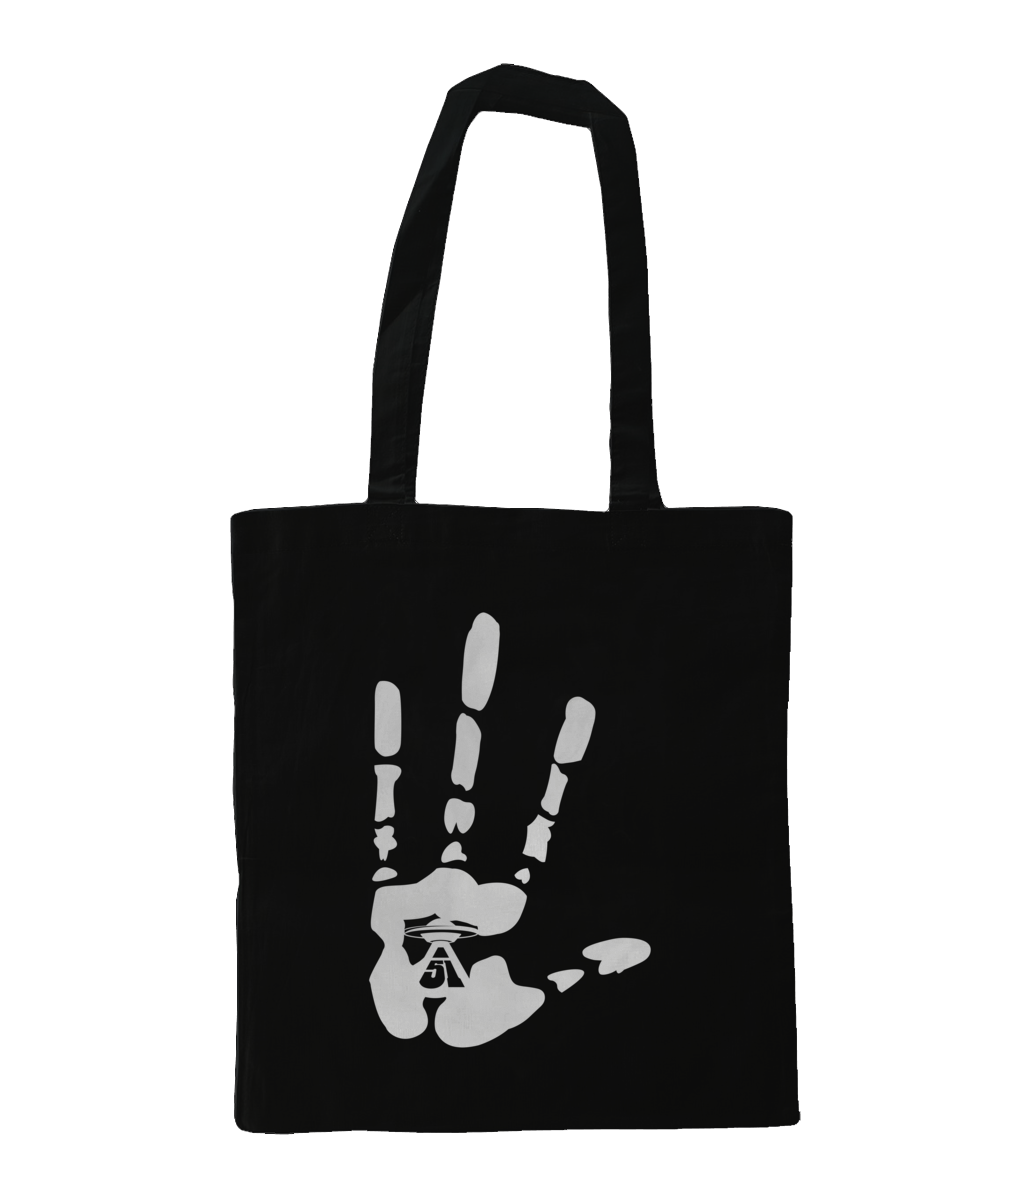 High Four - Tote Bag - Abduction 51 Extraterrestrial Streetwear | UFO & Alien Inspired